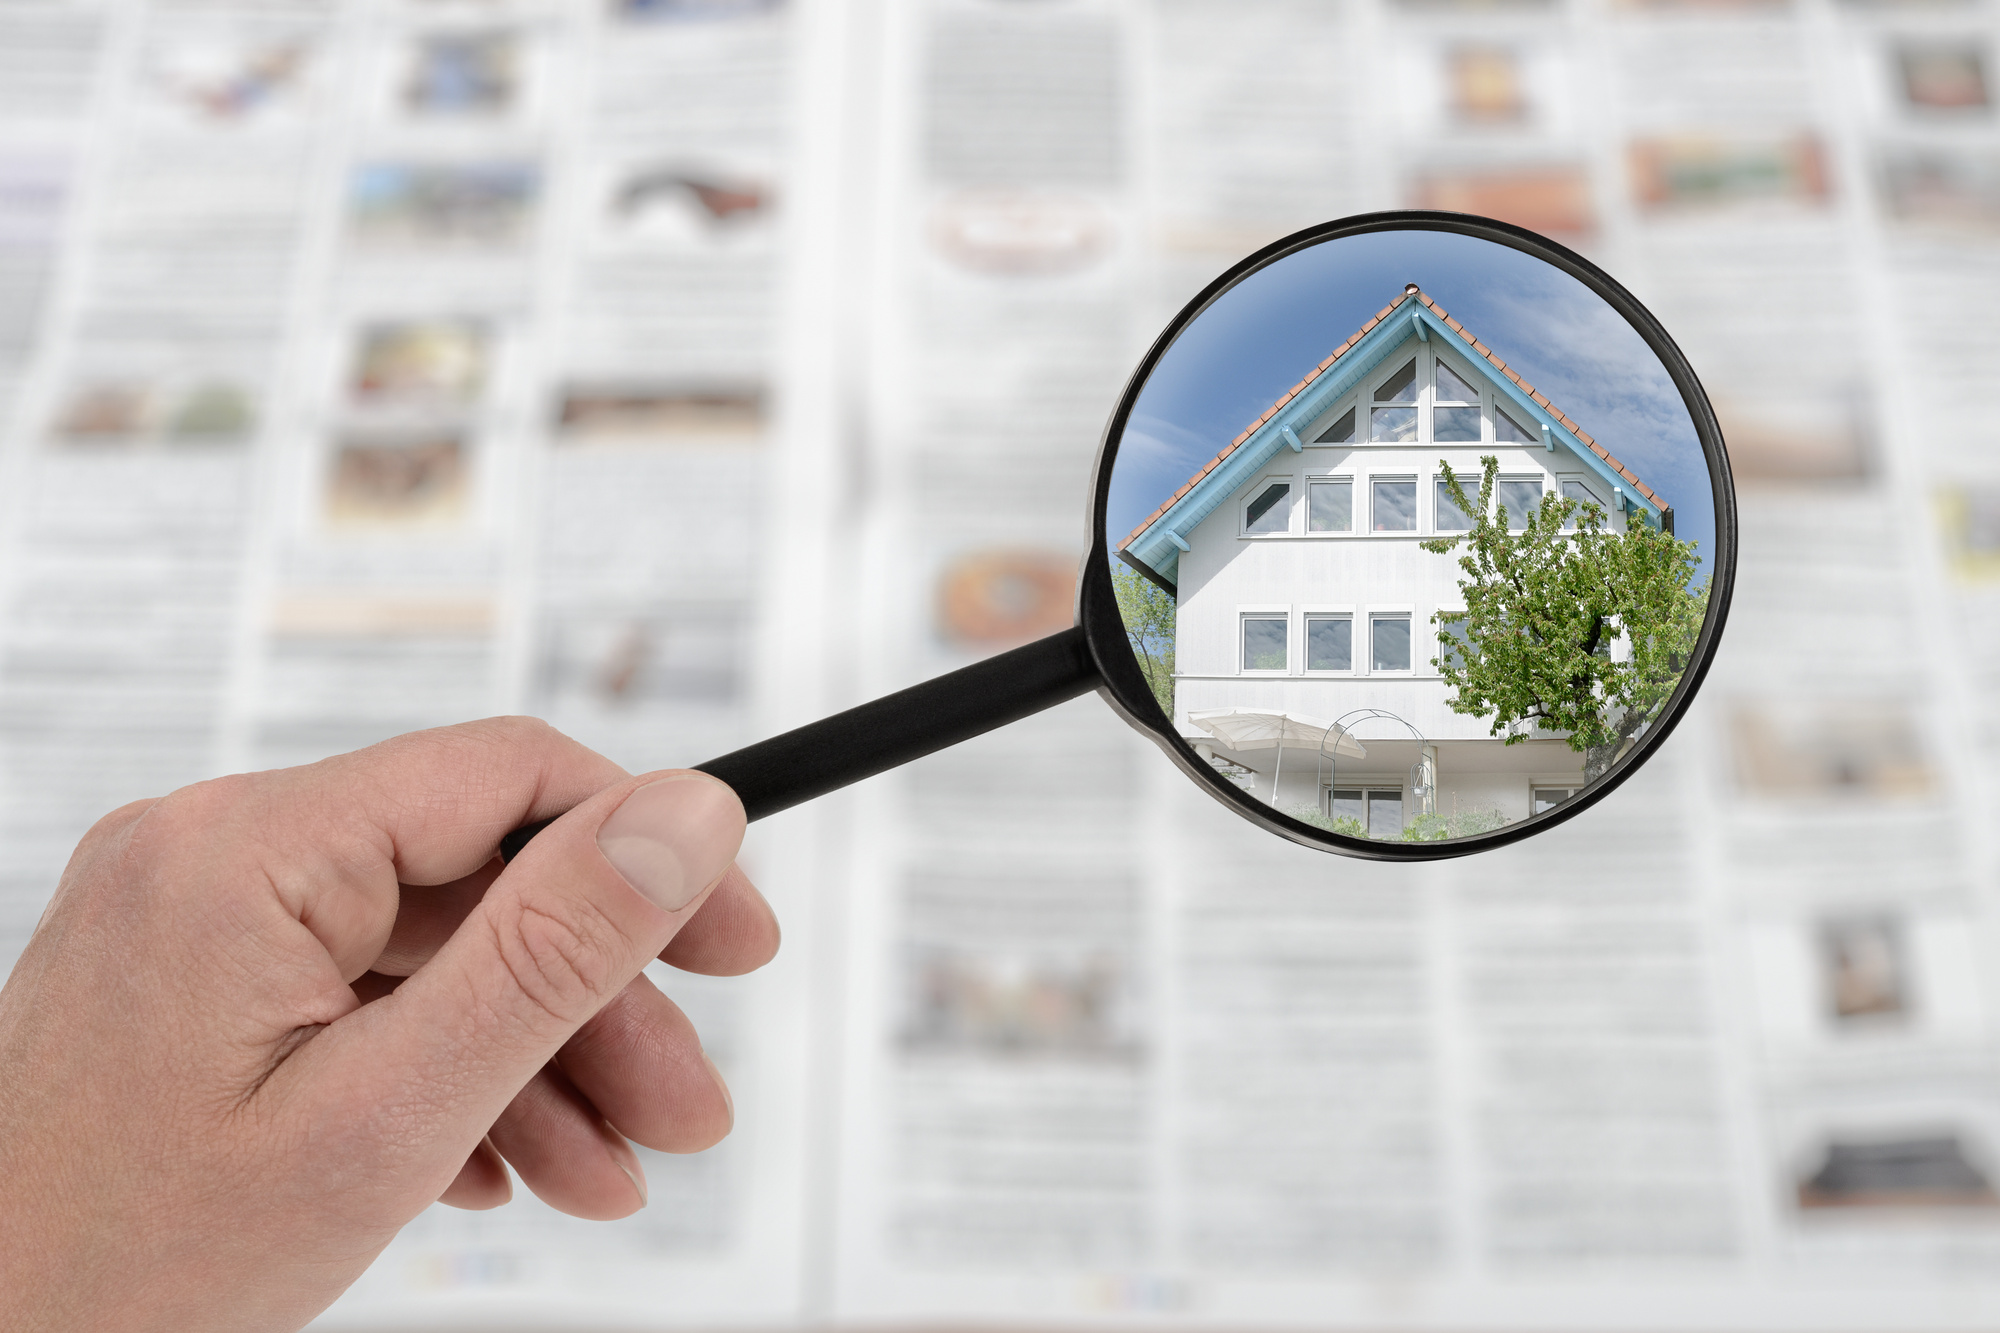 Owning a rental home is a great way to earn passive income. Before you make the jump, here are some things you need to know about purchasing a rental property.